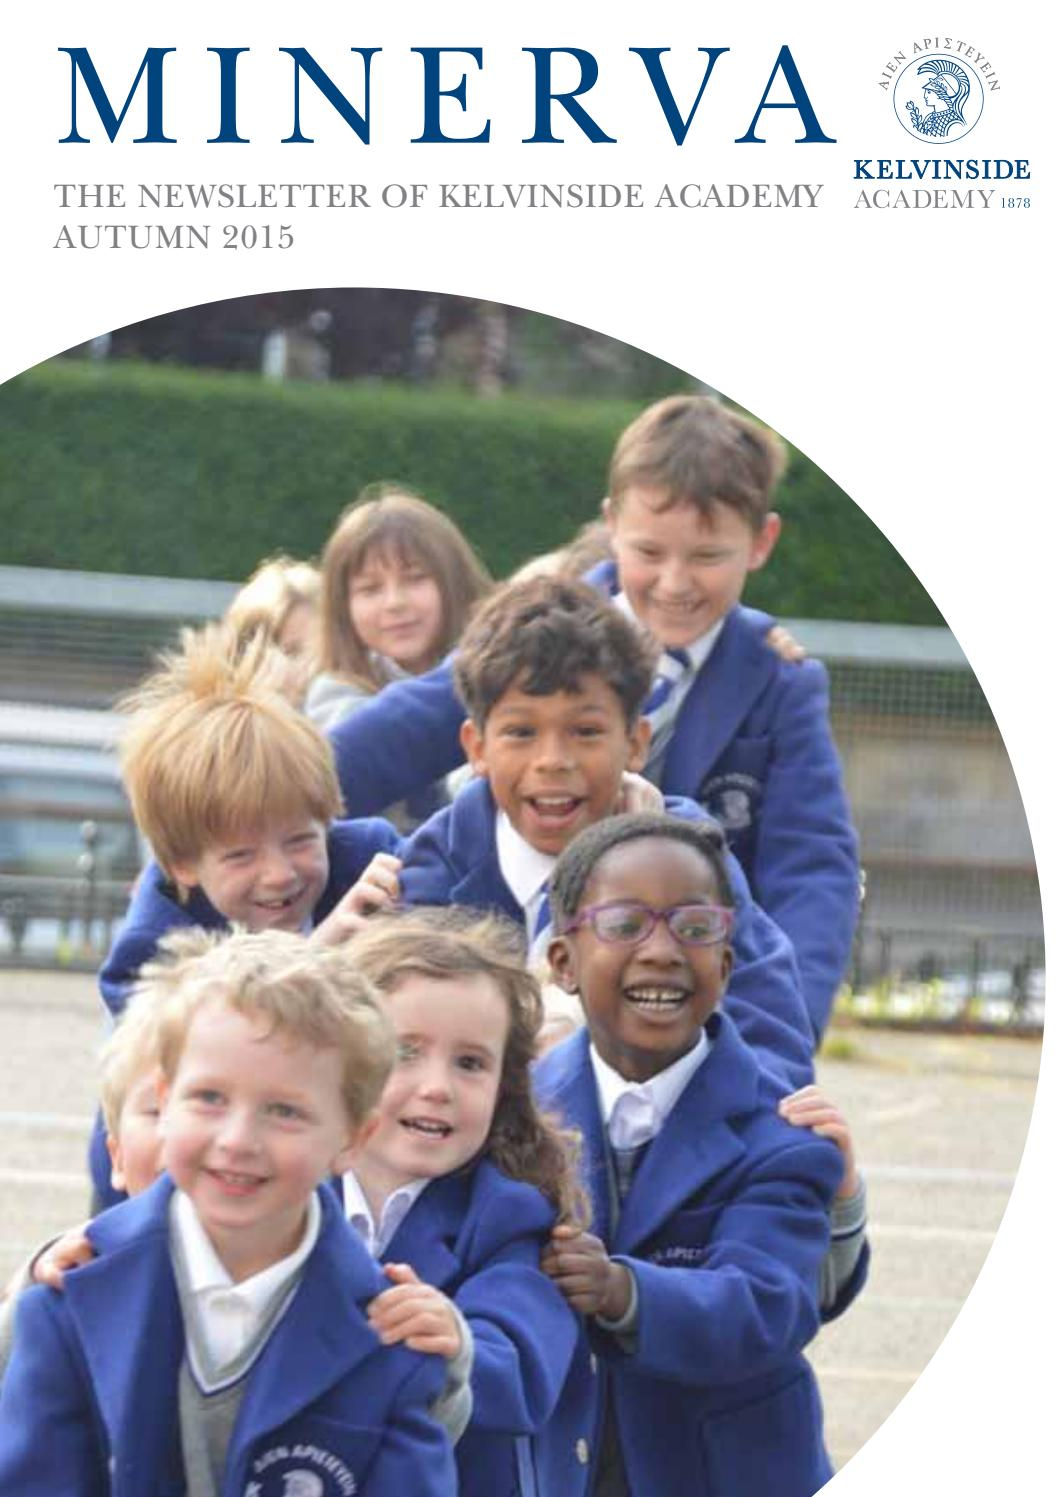 Minerva Autumn 2015 By Kelvinside Academy Issuu The gilliland investments company has been functioning successfully for 18 years now. minerva autumn 2015 by kelvinside